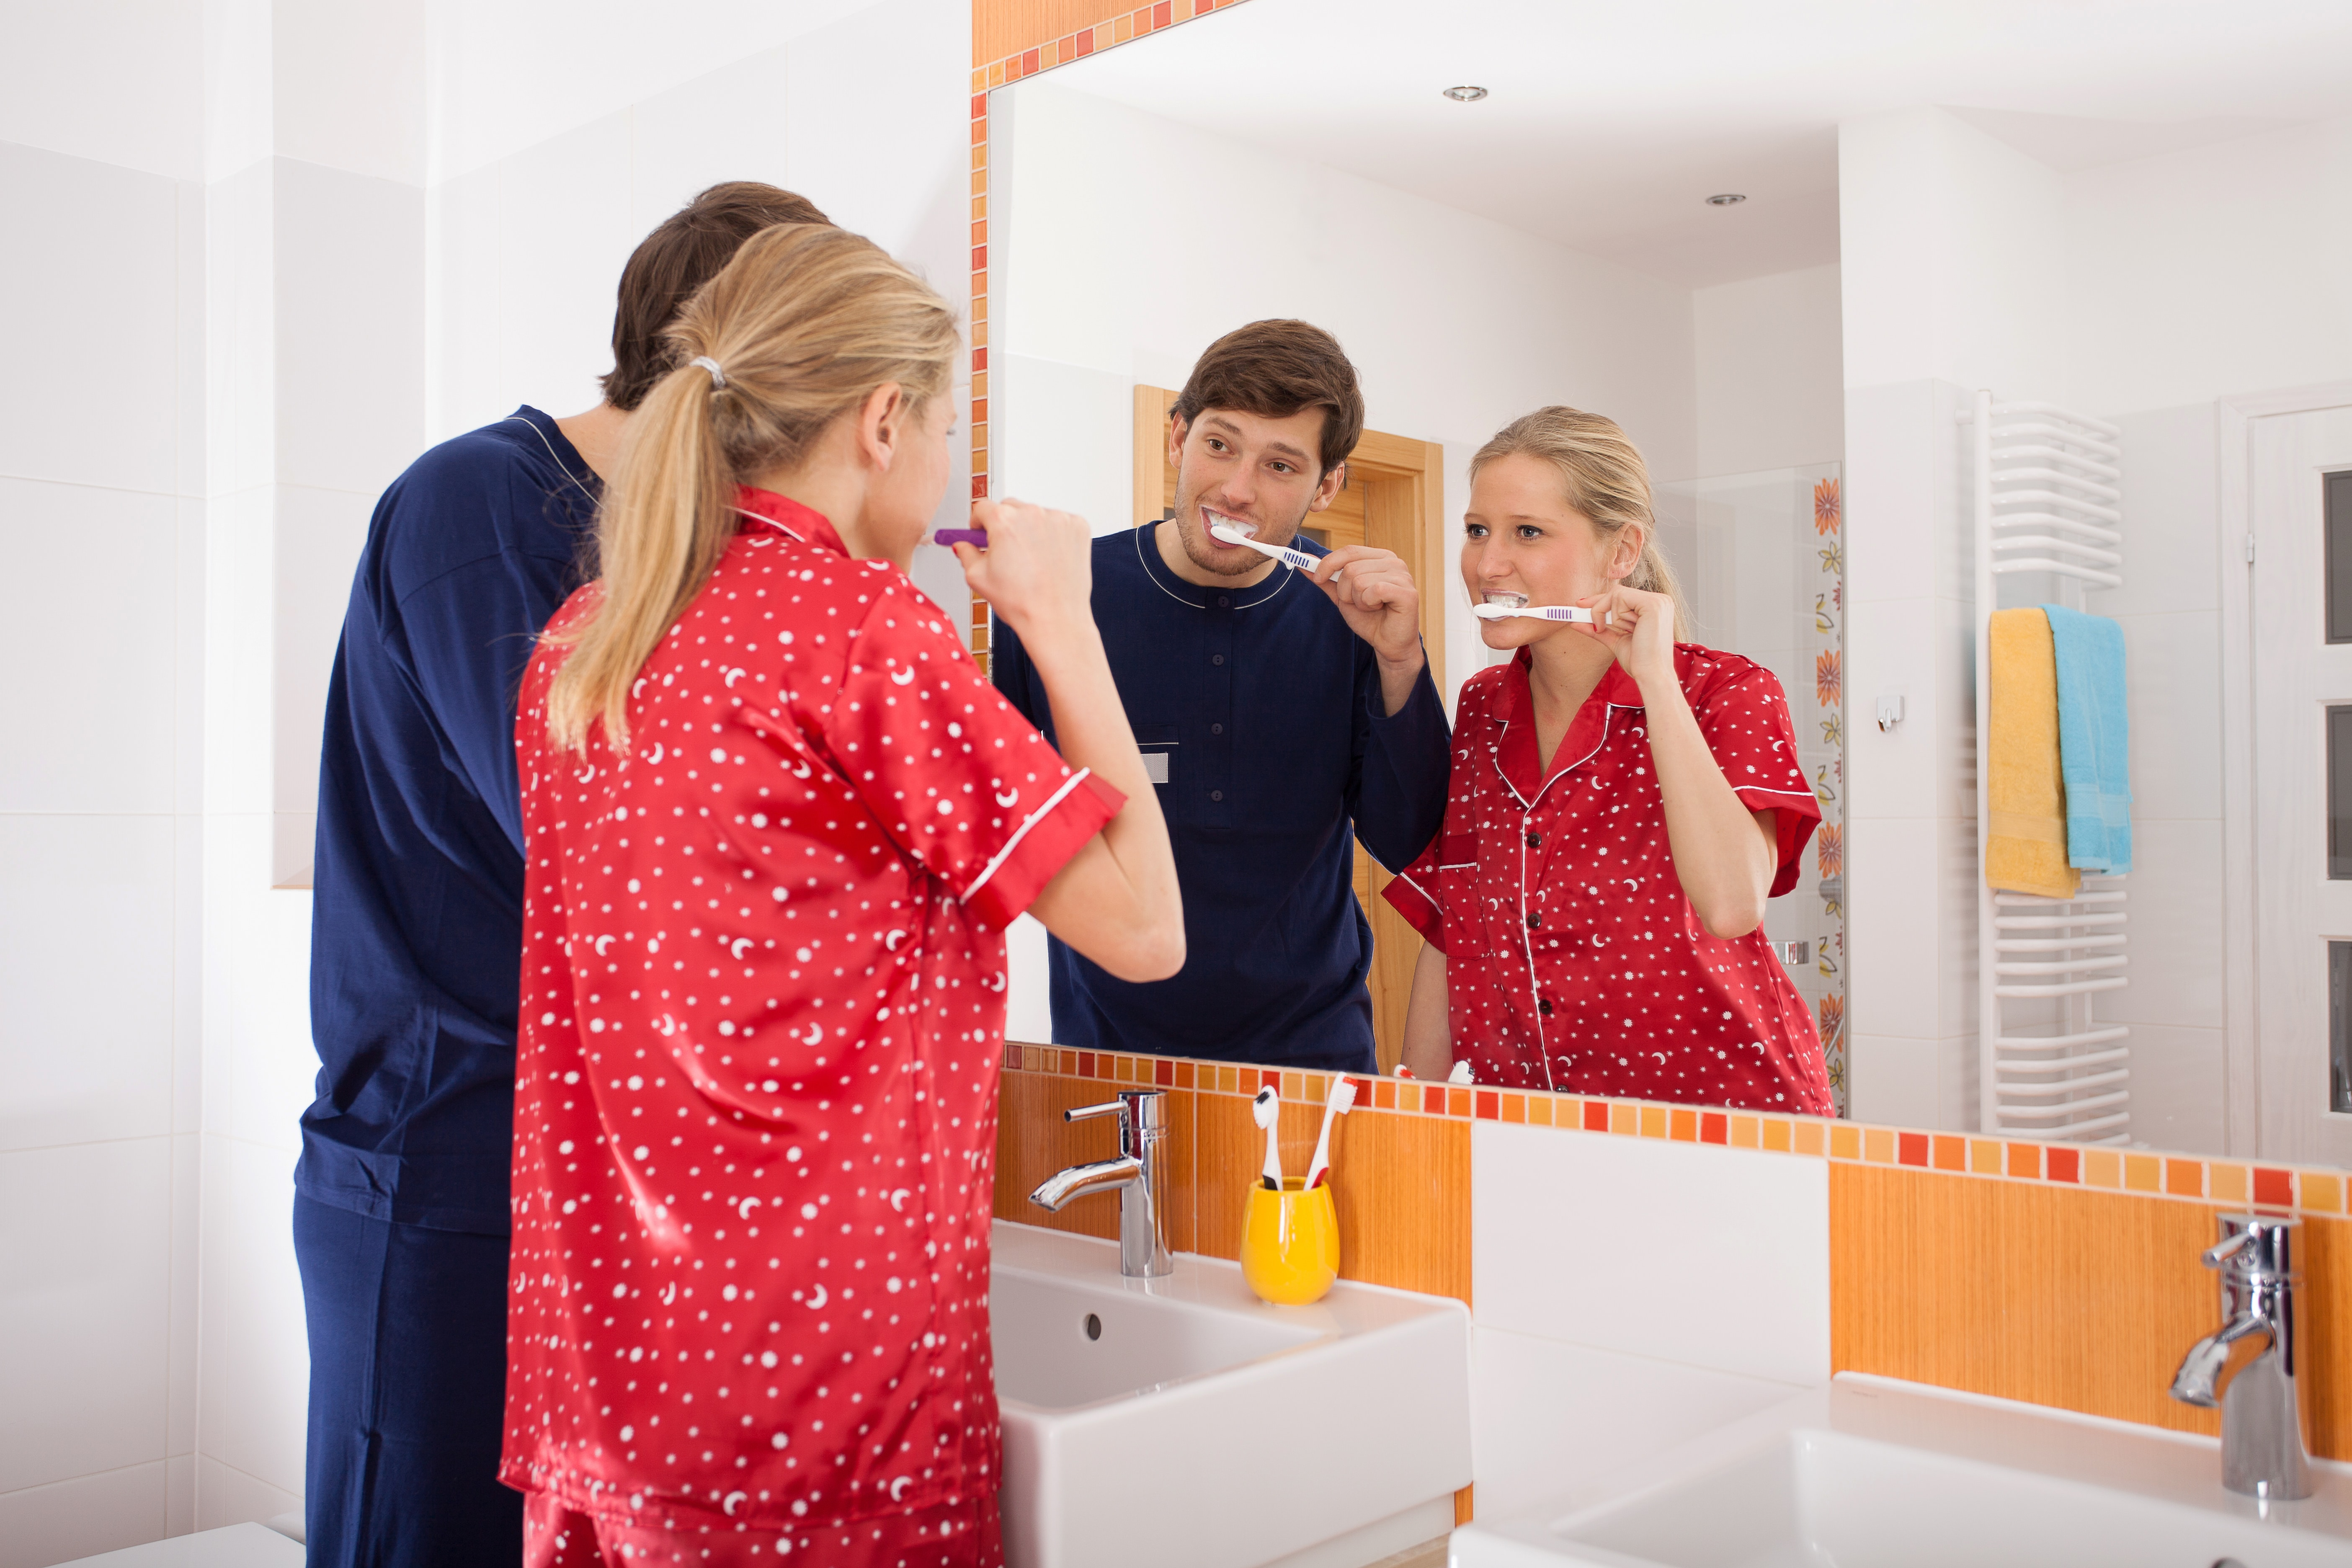 An Oral Hygiene Routine At Bedtime